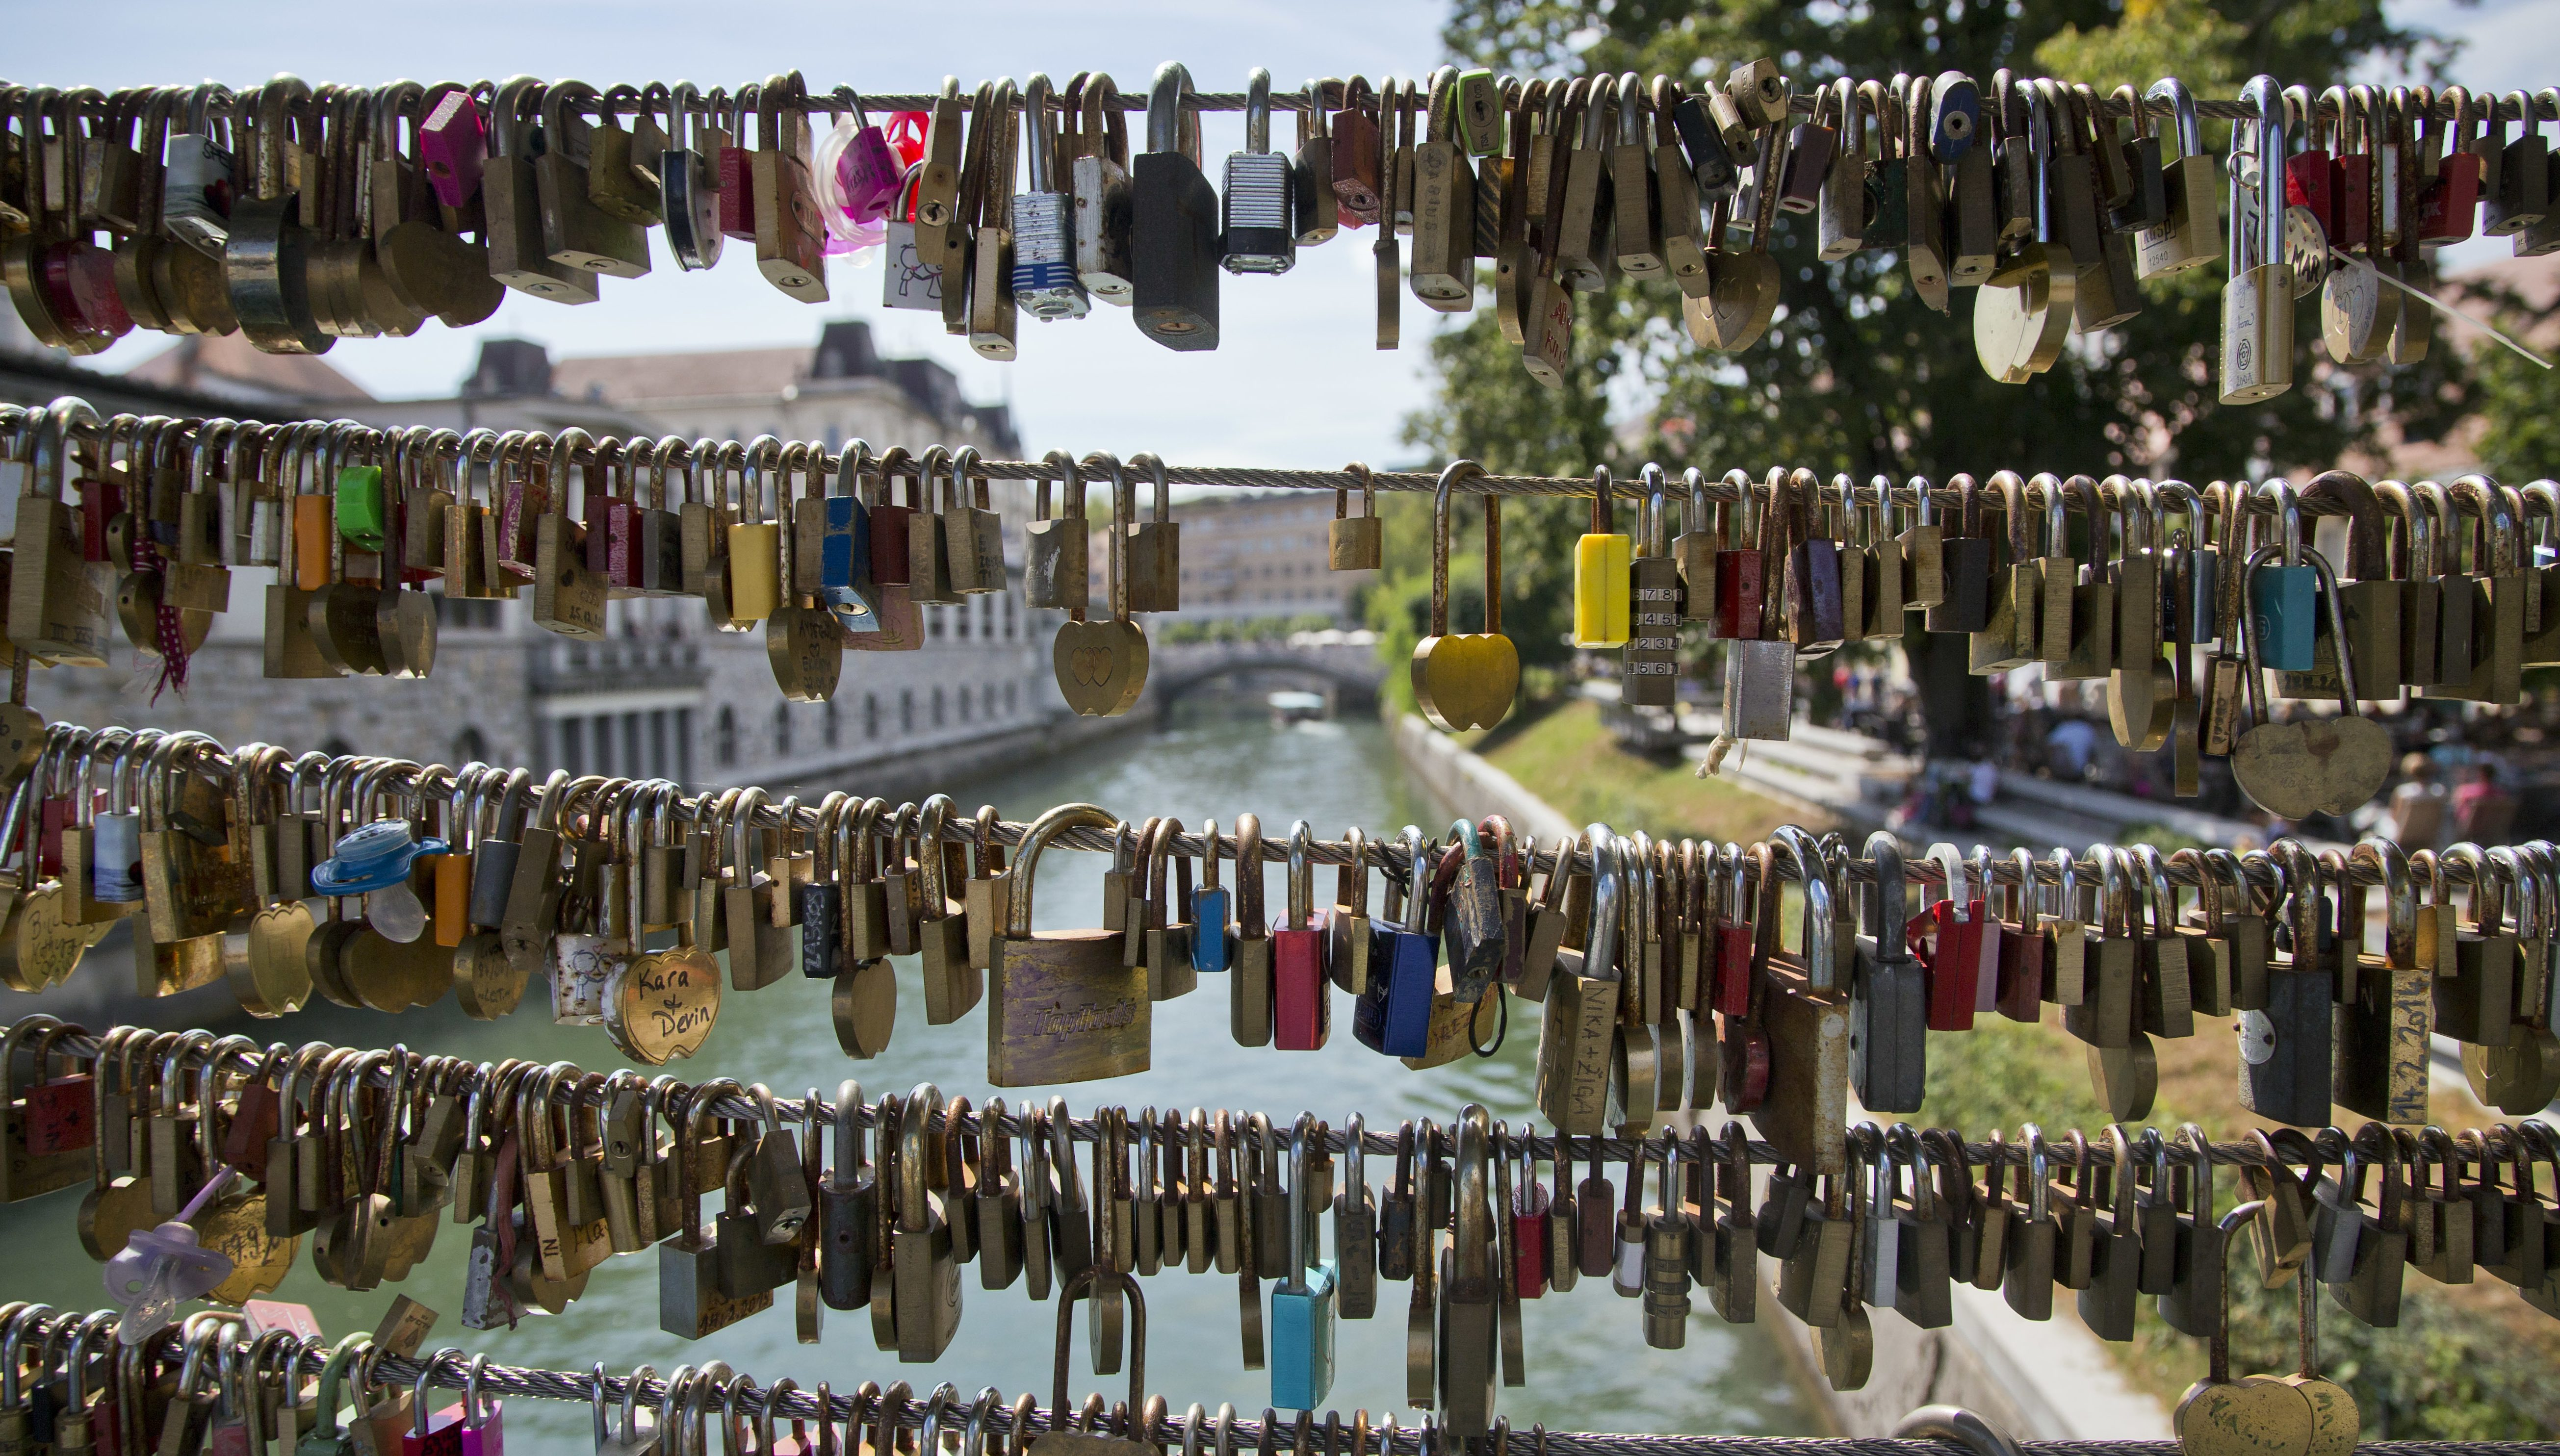 In this Aug. 12, 2016 photo, padlocks left by couples hang at a bridge in downtown Ljubljana, Slovenia. Over the past two decades since Melanija Knavs, who later changed her name to Melania Knauss, left her native Slovenia and married American billionaire Donald Trump after pursuing an international modeling career, Ljubljana has turned from a gray and drab place with almost no night life, into a lively and picturesque city filled with restaurants, cafes and night clubs packed with foreigners. (AP Photo/Darko Bandic)